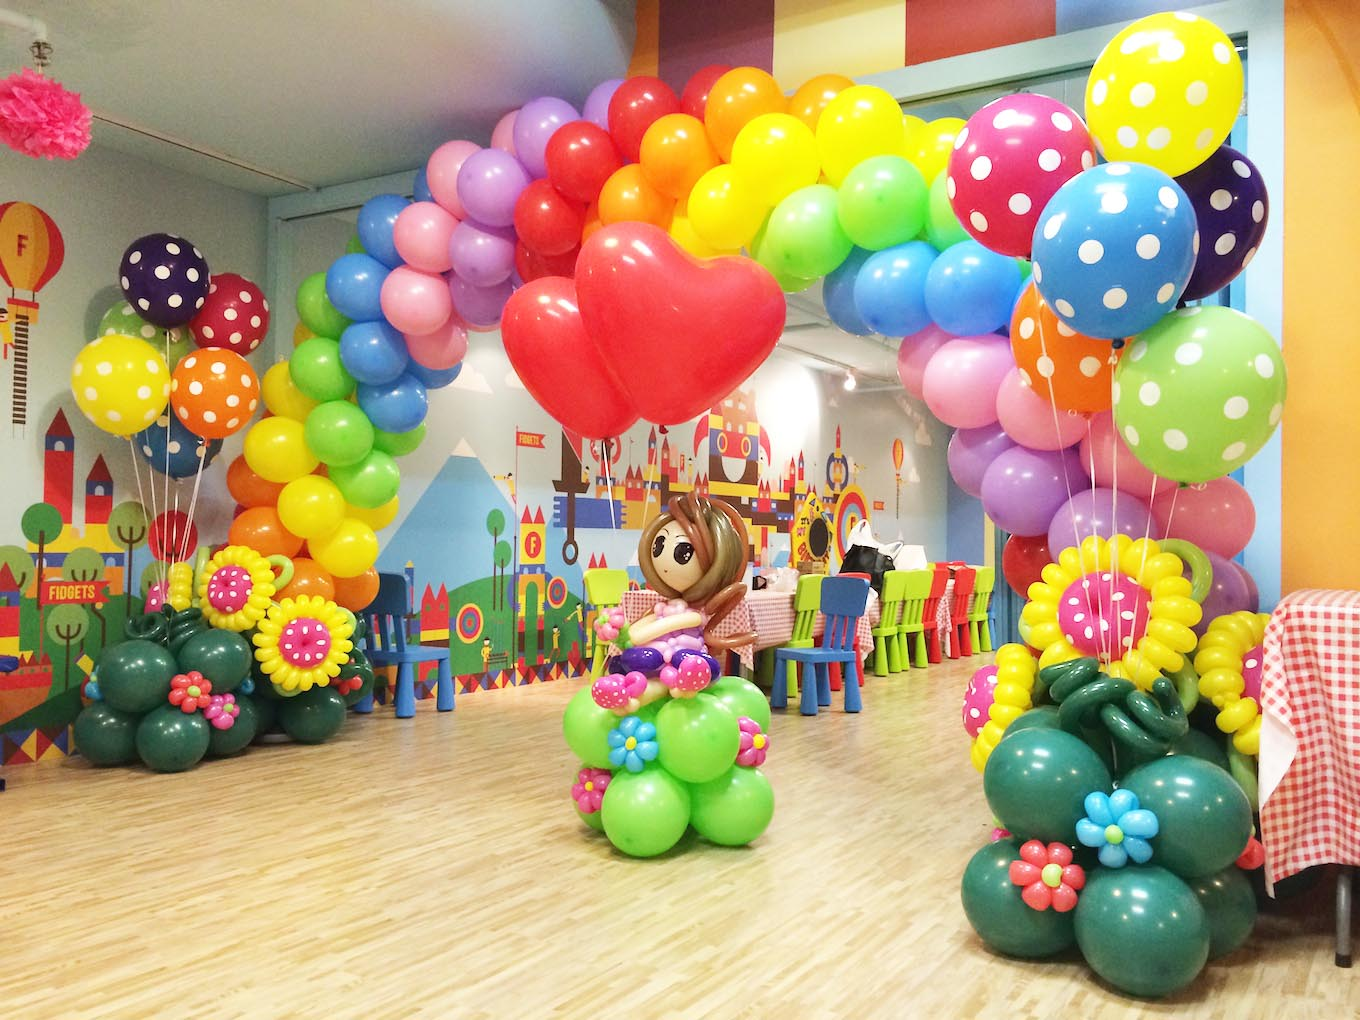 Cheapest balloon decorations for birthday party party for Balloon decoration ideas for birthdays